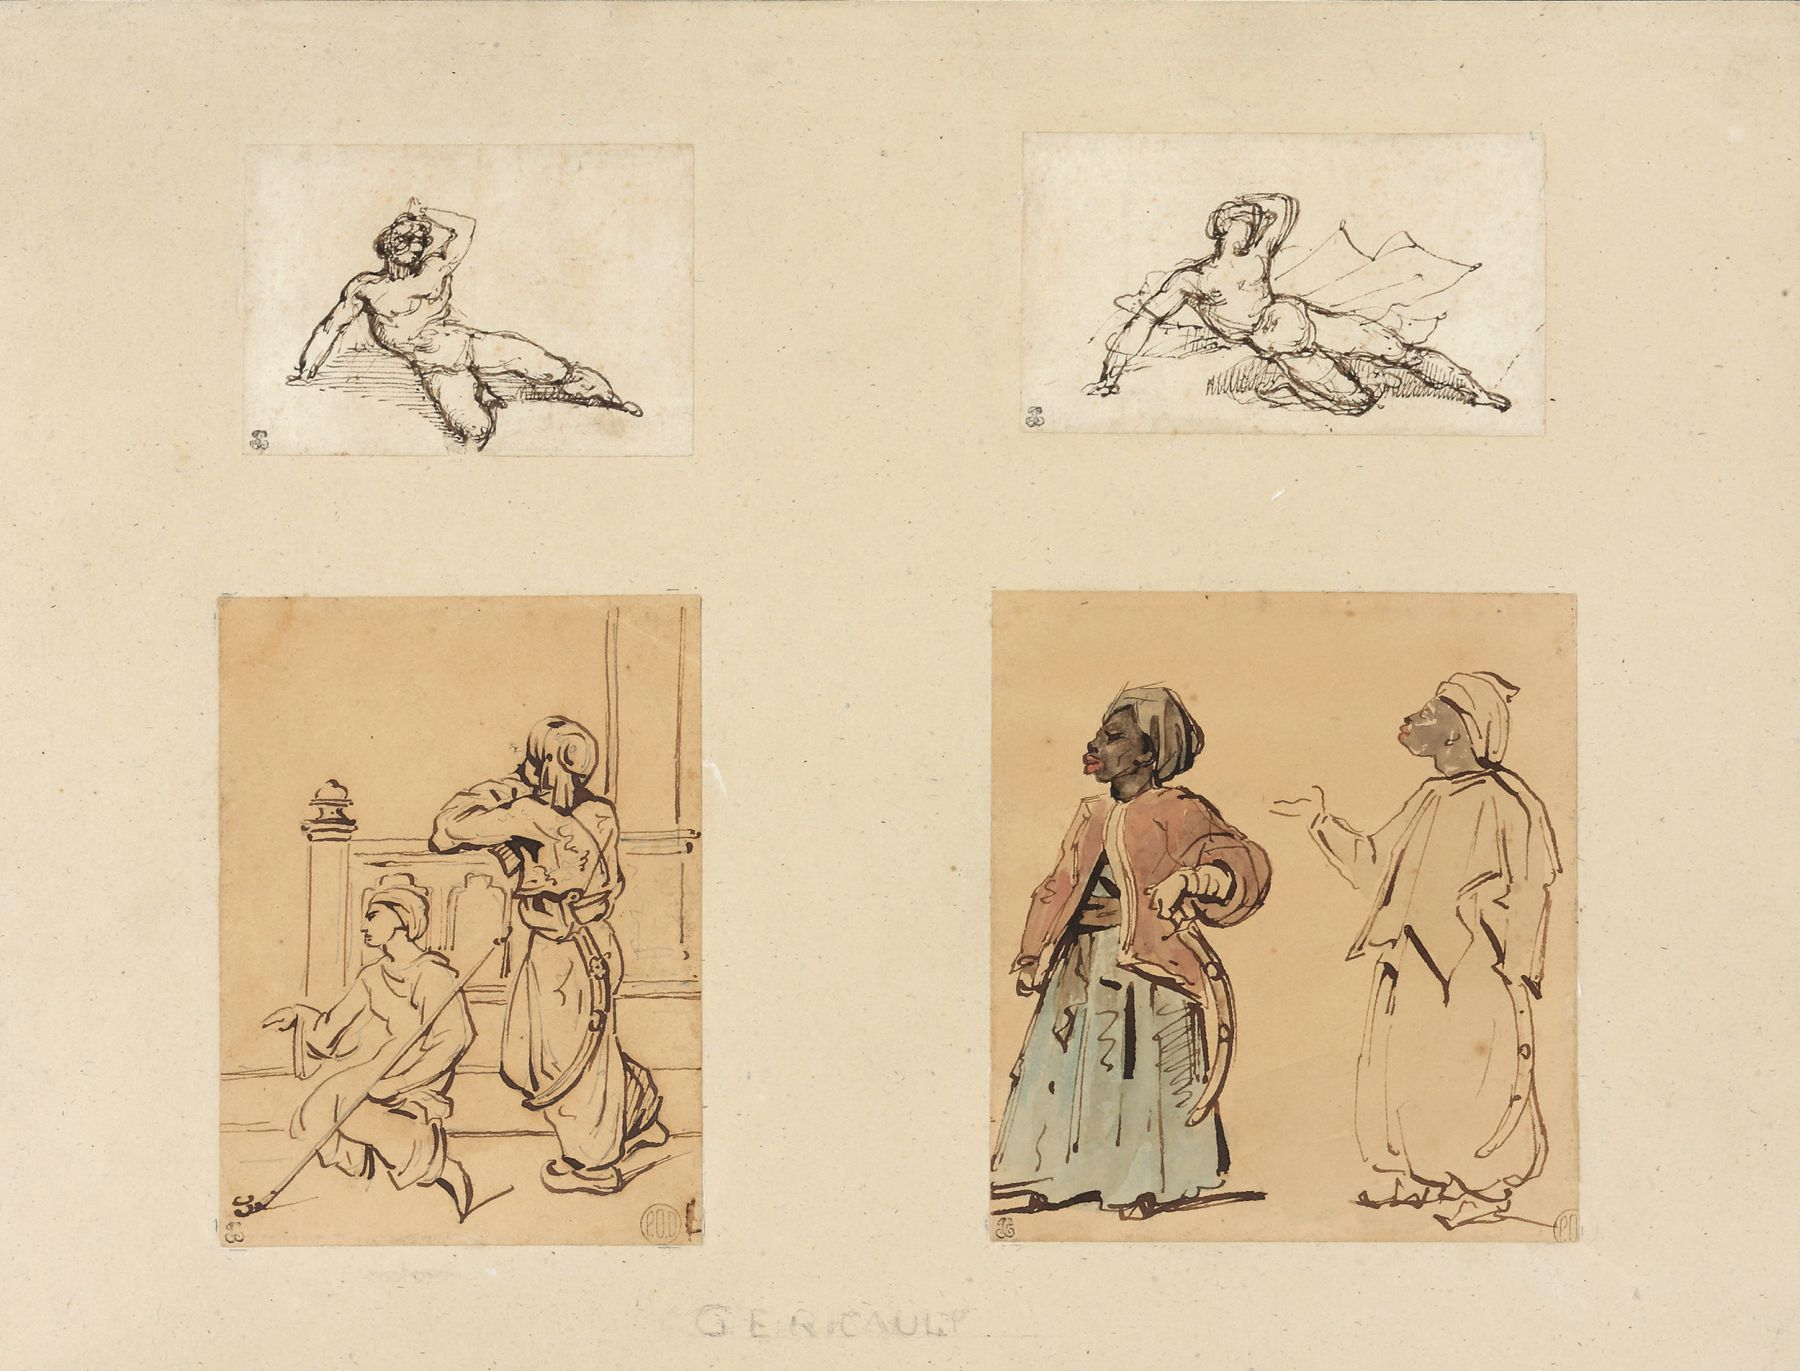 Theodore Gericault, Four drawings: Two Reclining Male Nudes and Two Studies of Arabs Watercilor and ink on paper 13 x 16 1/8 inches